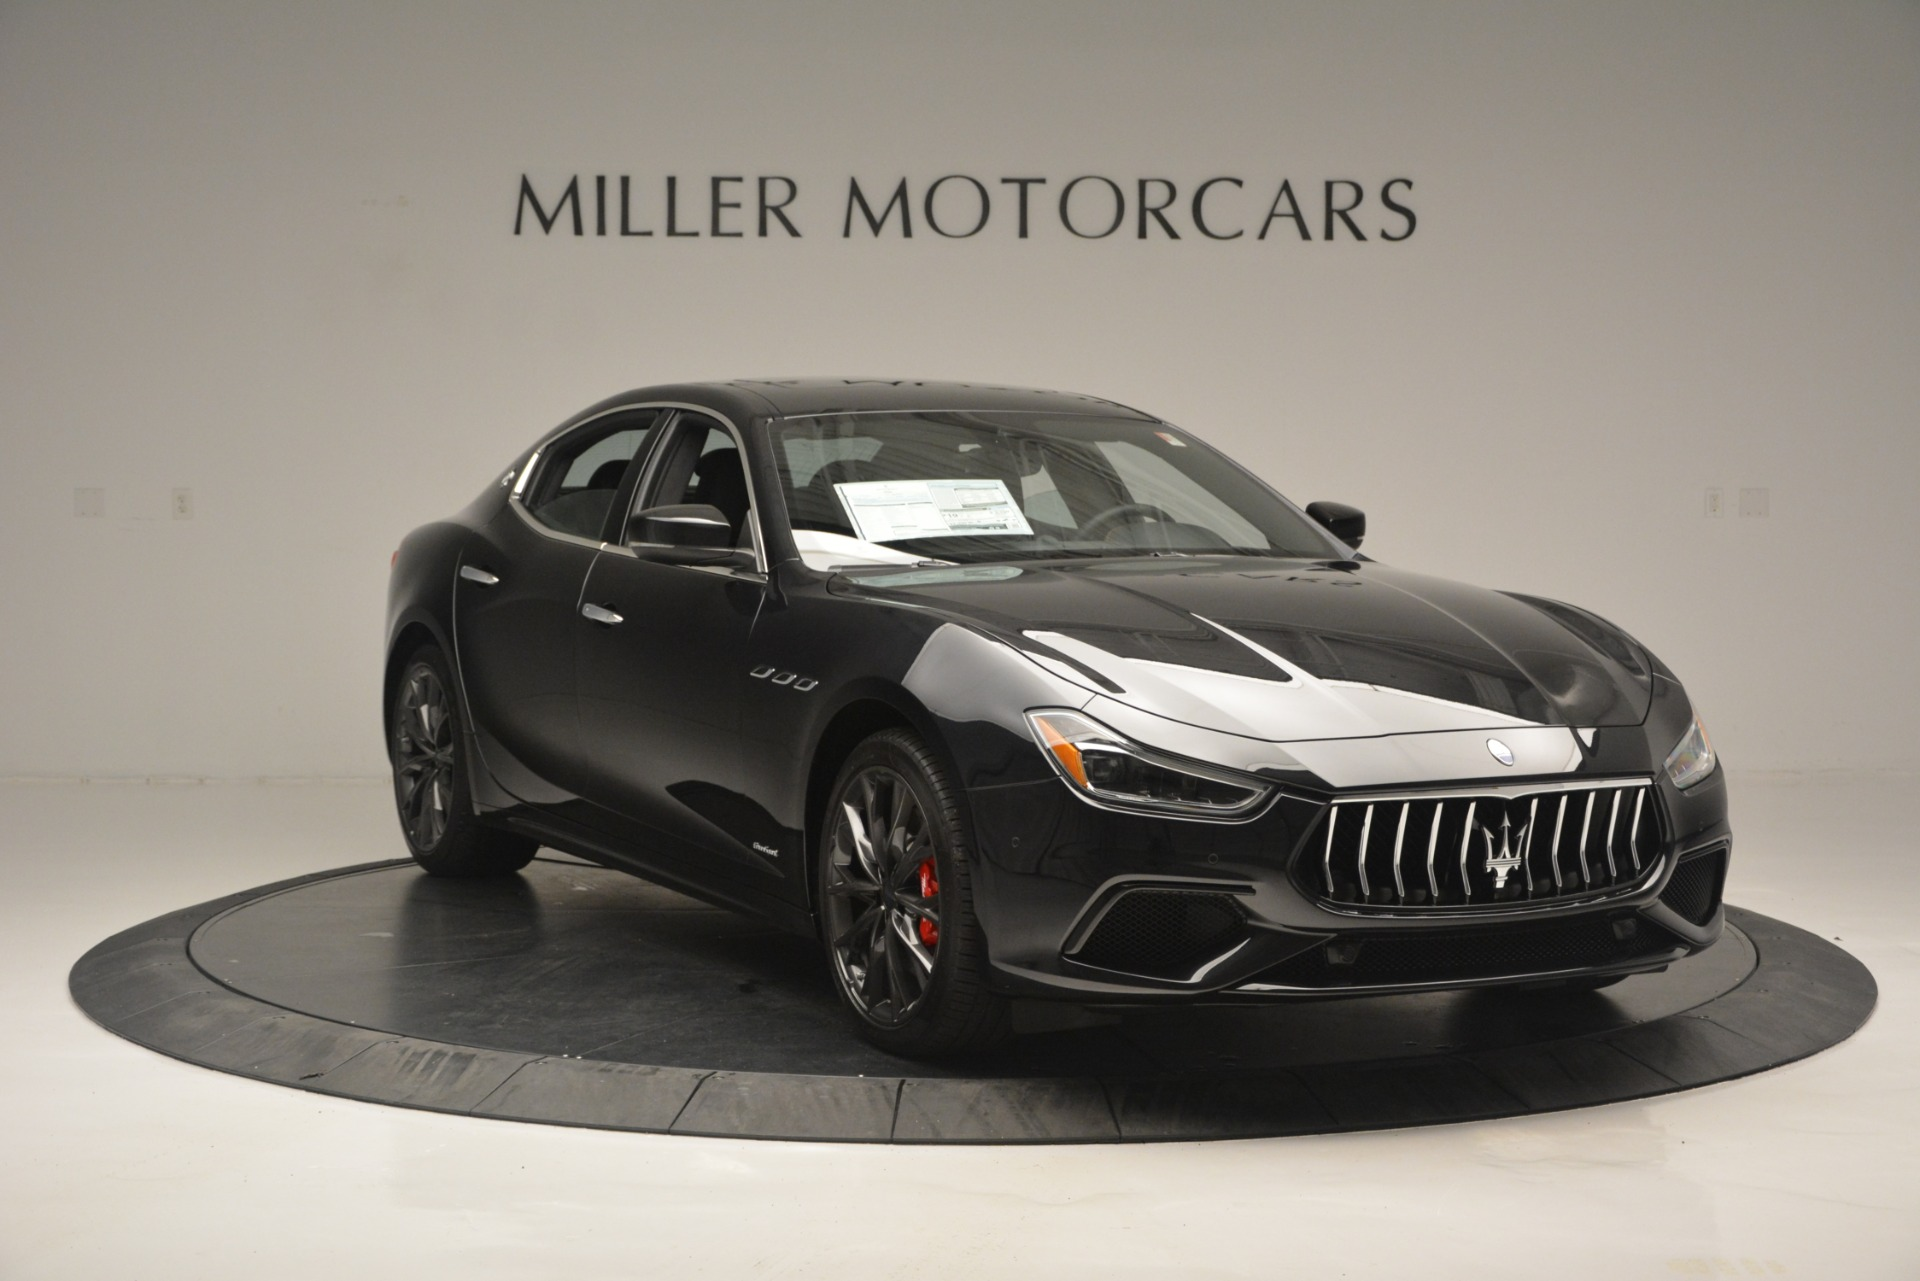 New 2019 Maserati Ghibli S Q4 GranSport For Sale In Westport, CT 2588_p11